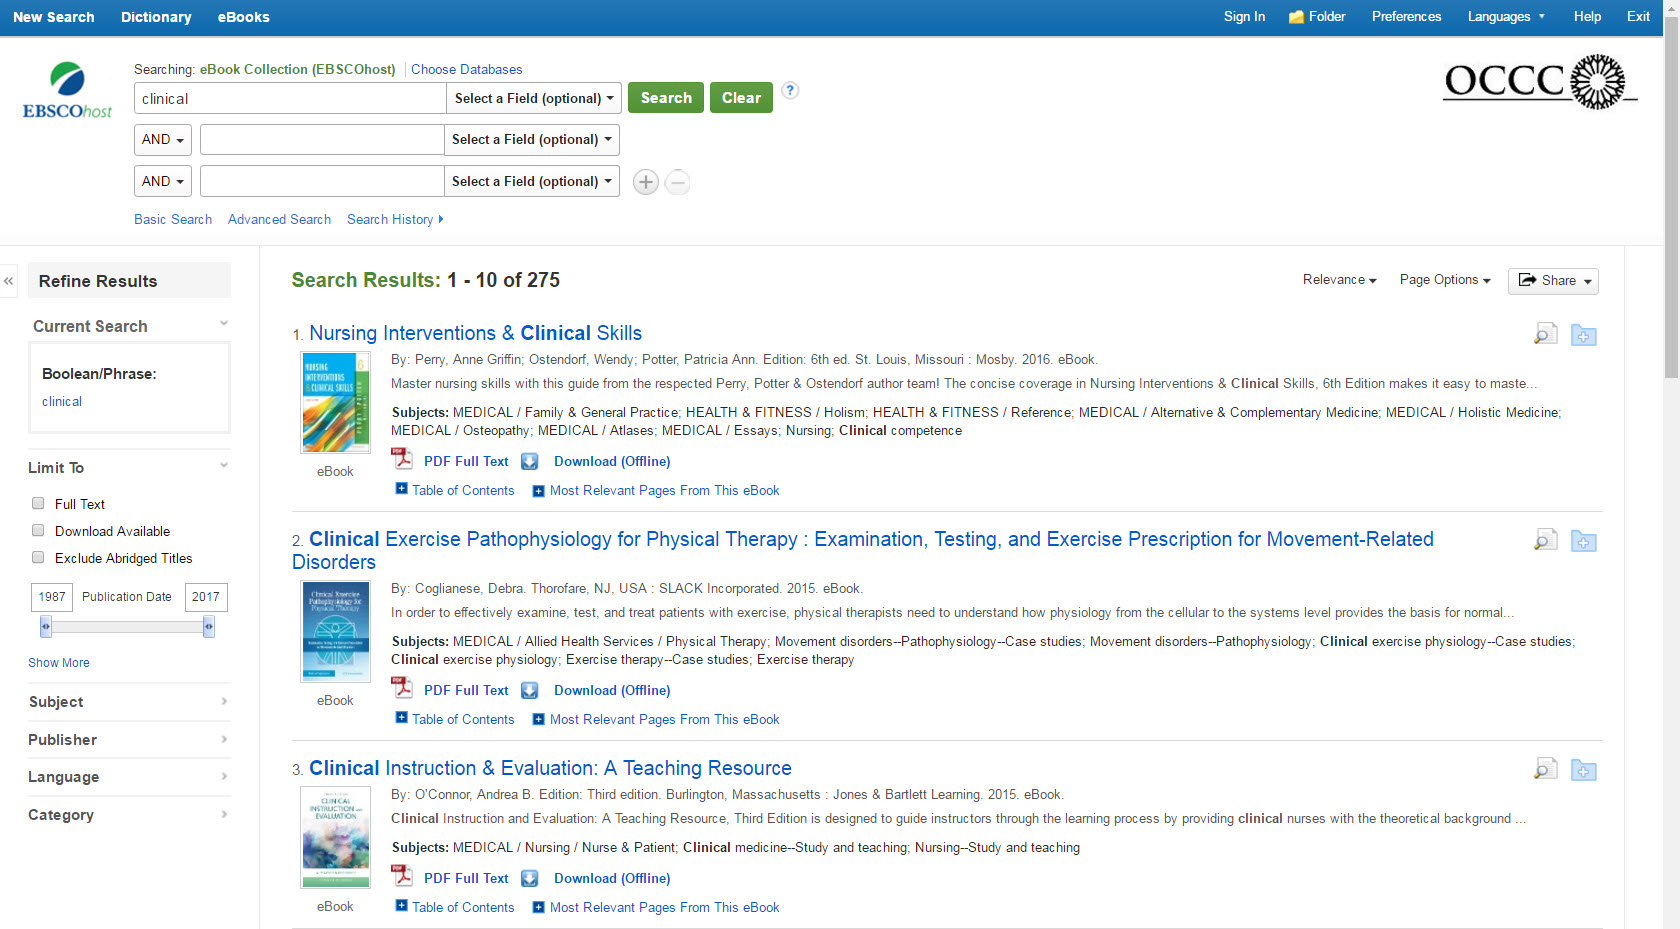 EBSCO eBook search results